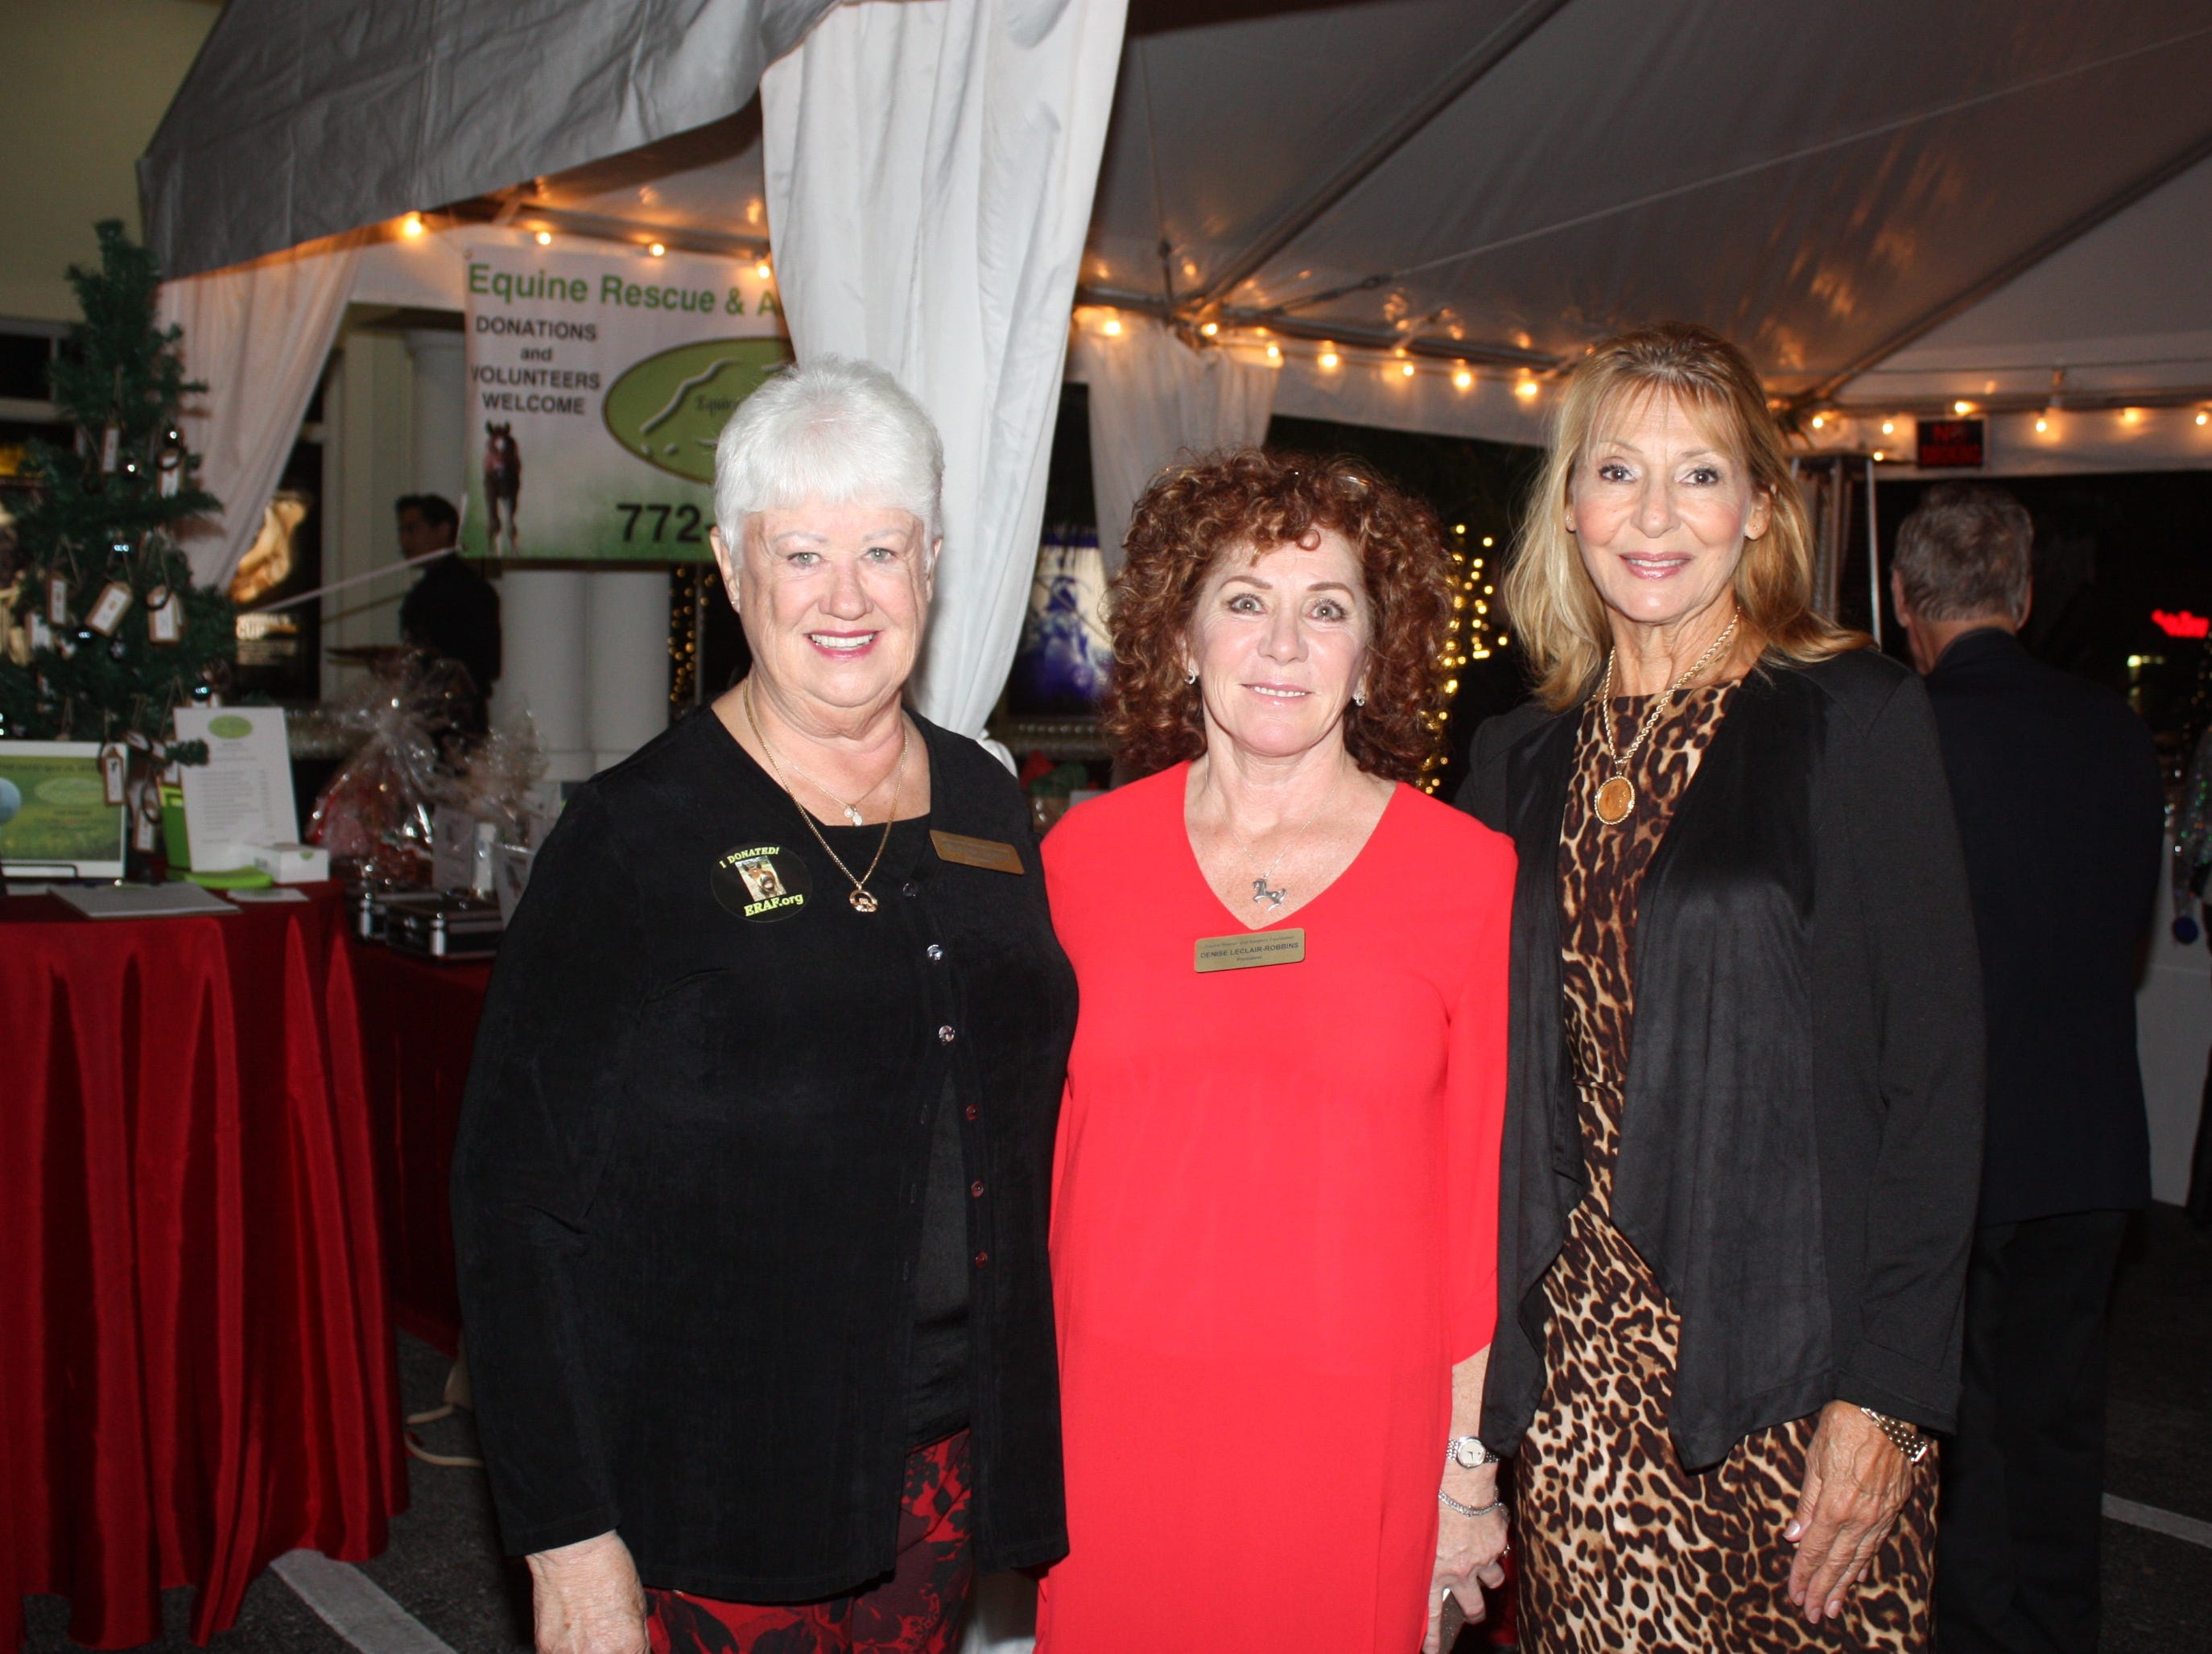 Marilynn Vannucci, left, Denise LeClair-Robbins and Dolores Kennedy at the Provident Jewelry party for the Equine Rescue and Adoption Foundation.